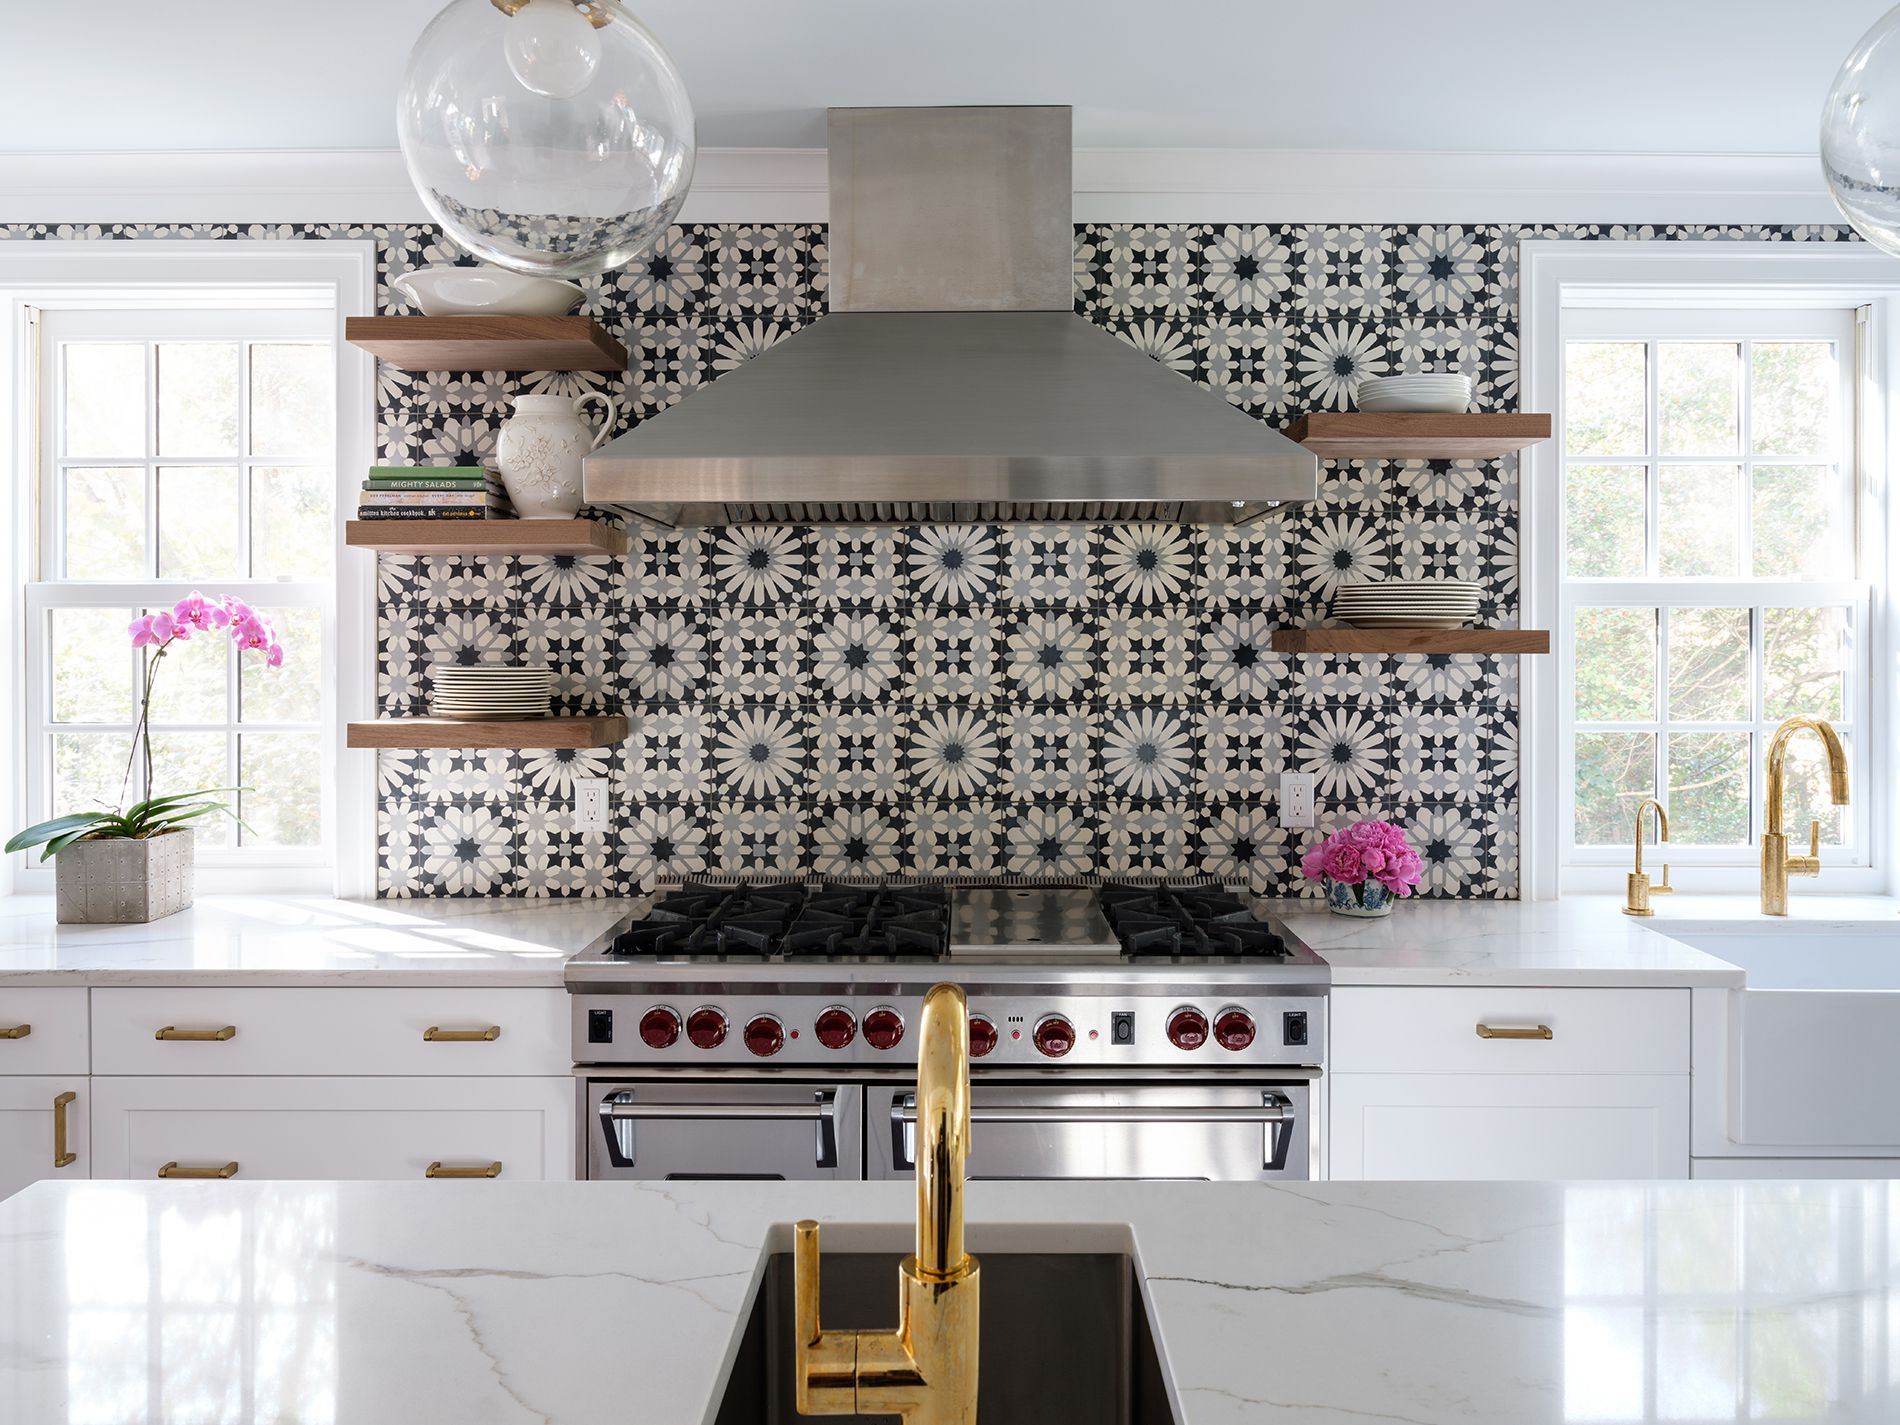 20 Black and White Design Ideas That are Totally Timeless